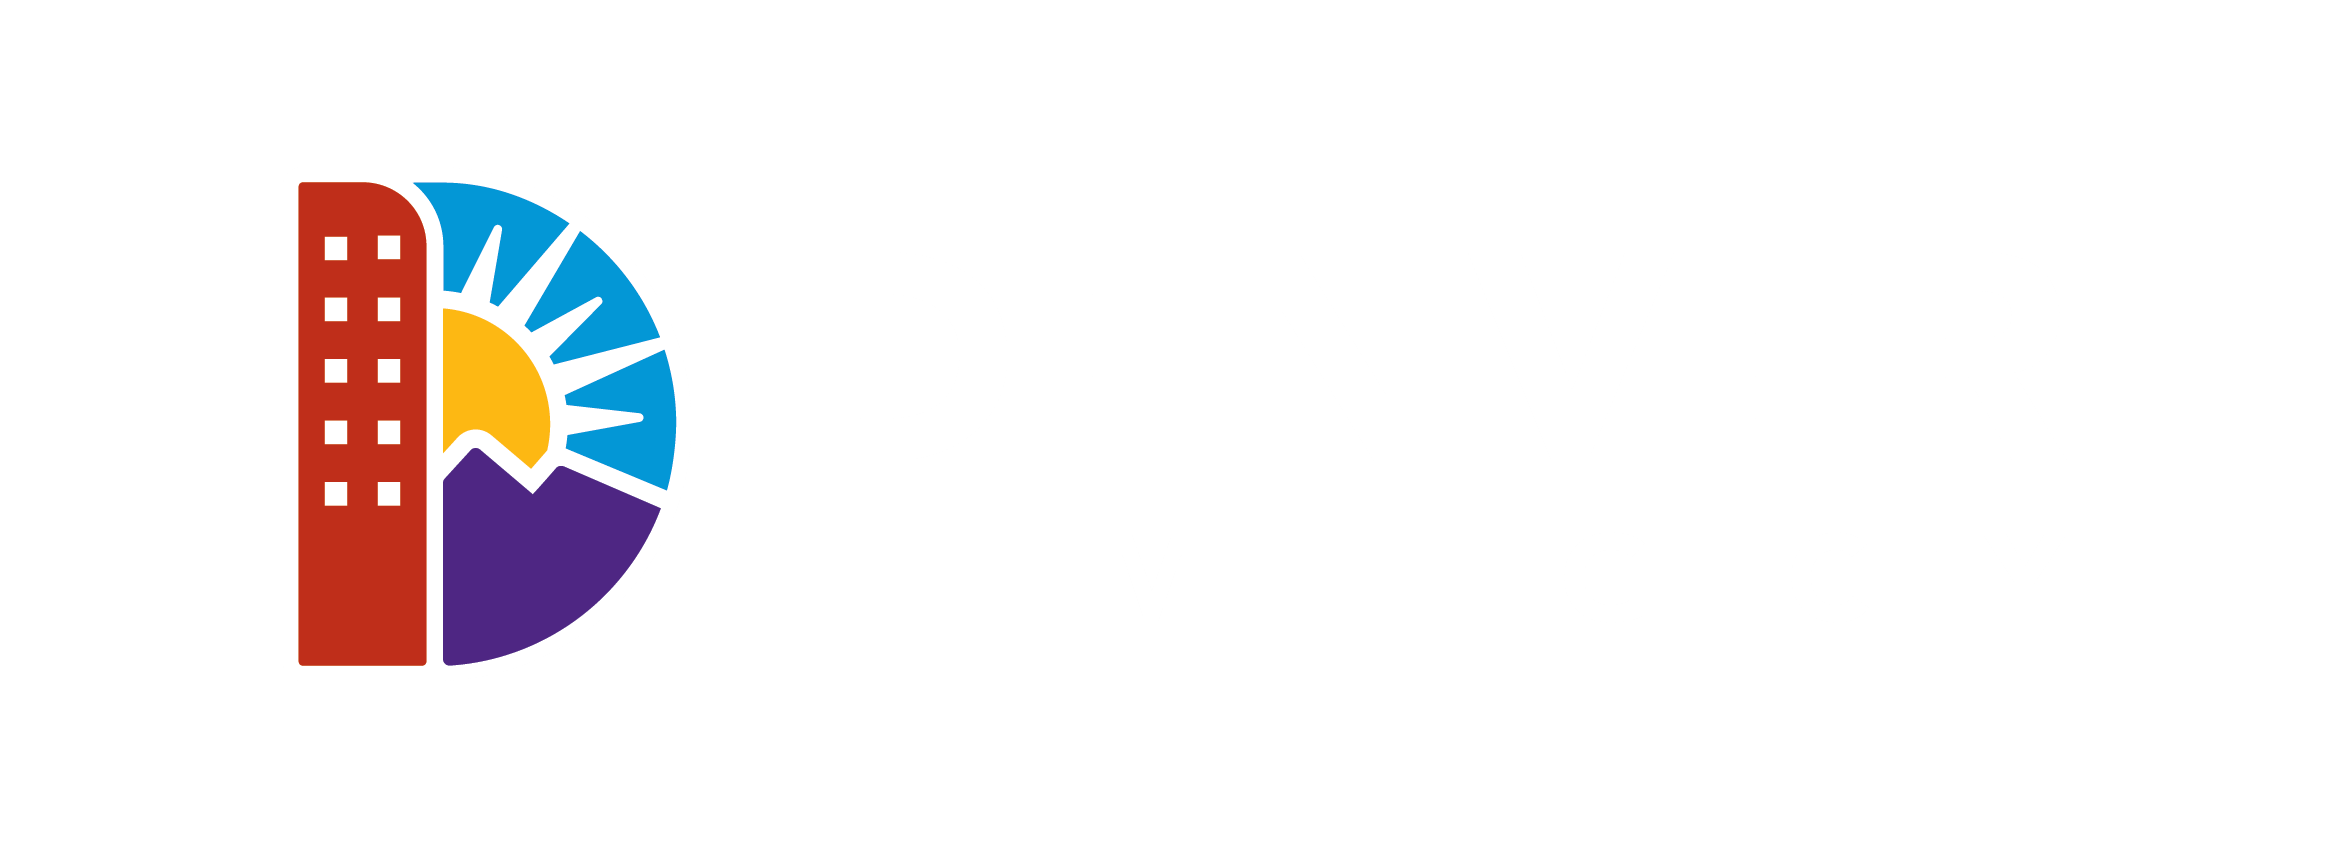 Official City and County of Denver - The Mile high City logo